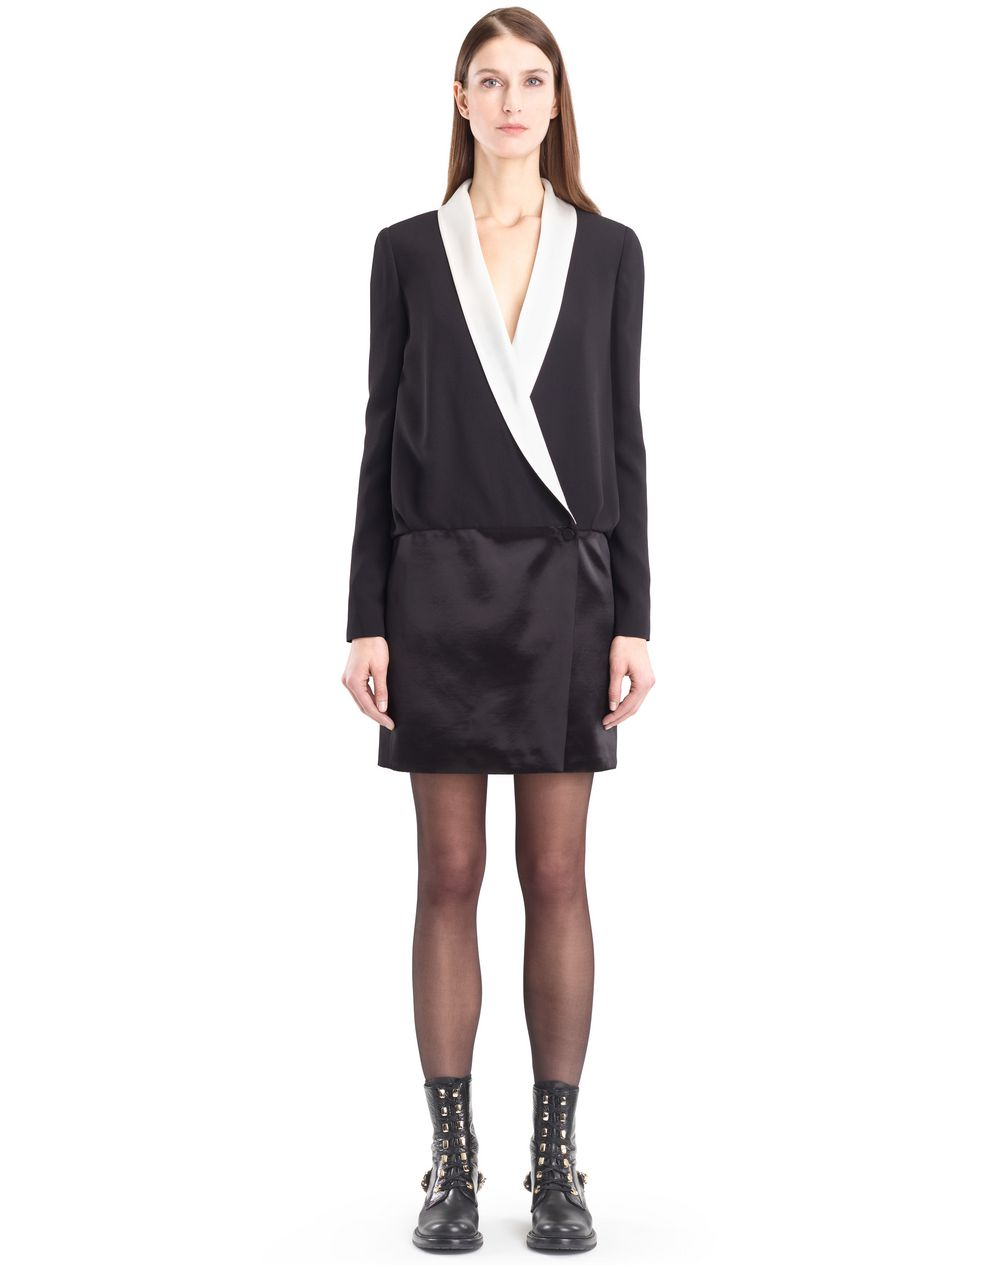 SATIN SABLE TUXEDO DRESS - Lanvin